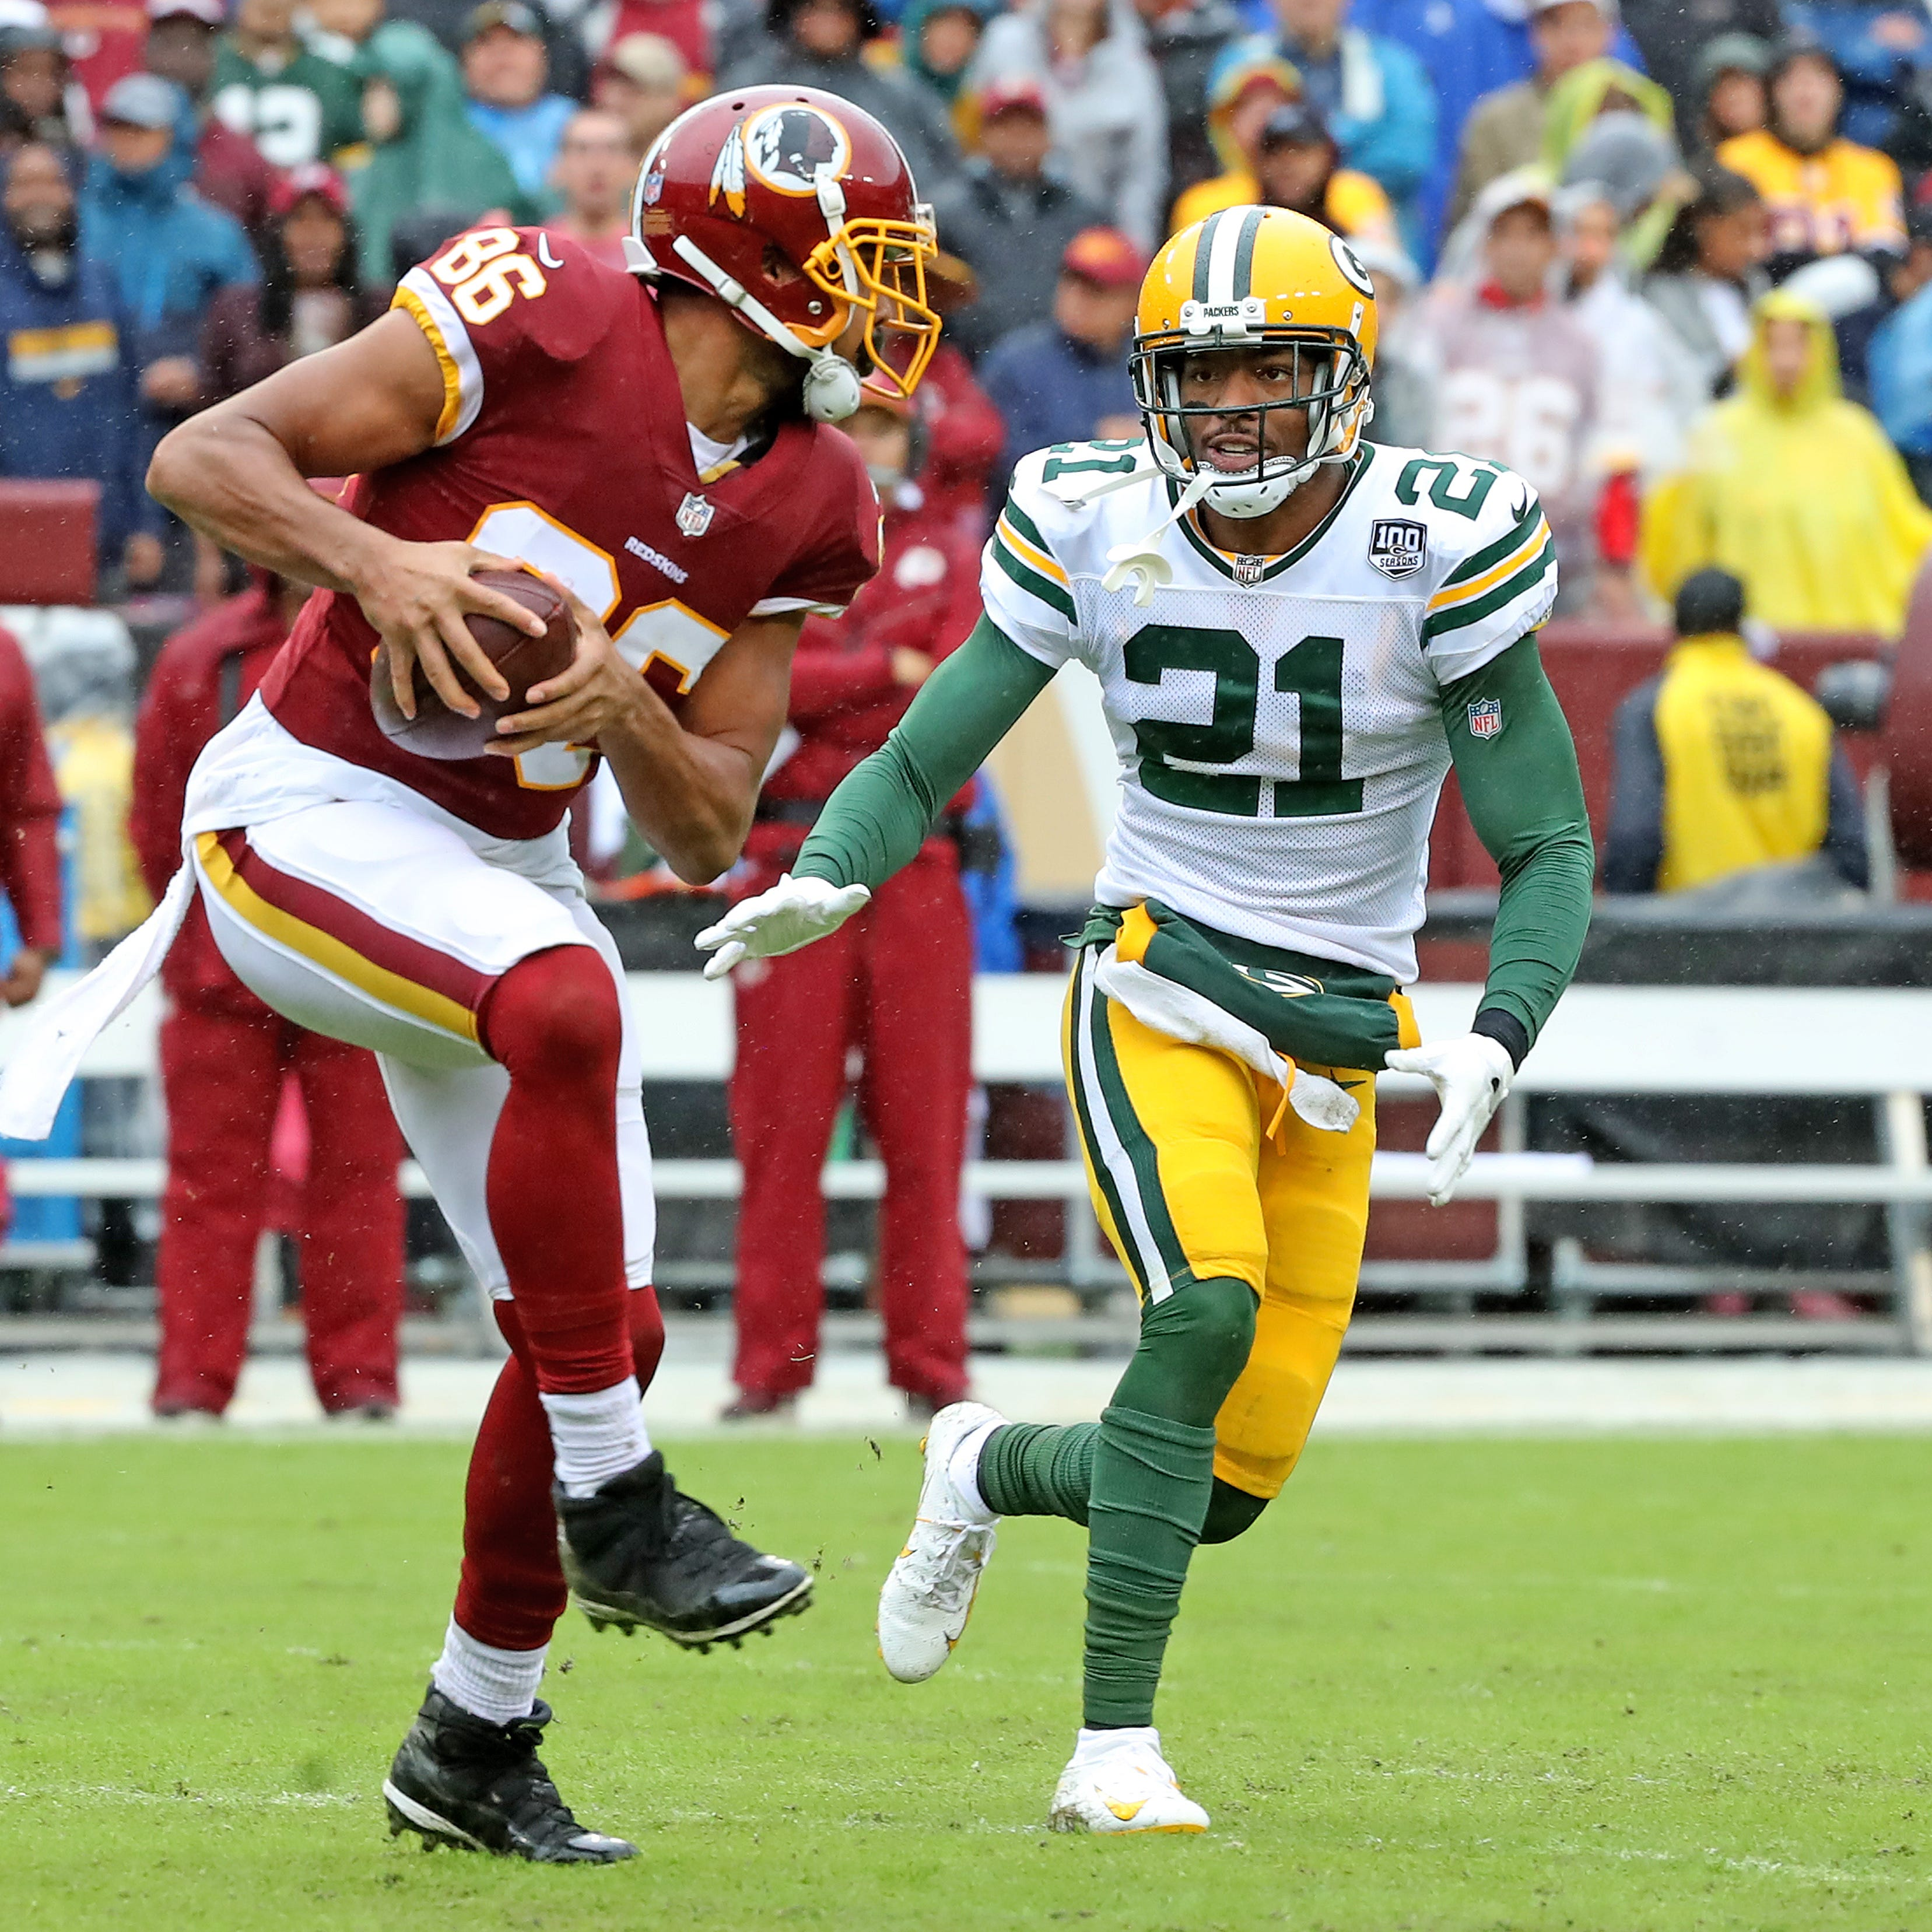 Green Bay Packers defense breaks down in first half, allowing four touchdowns